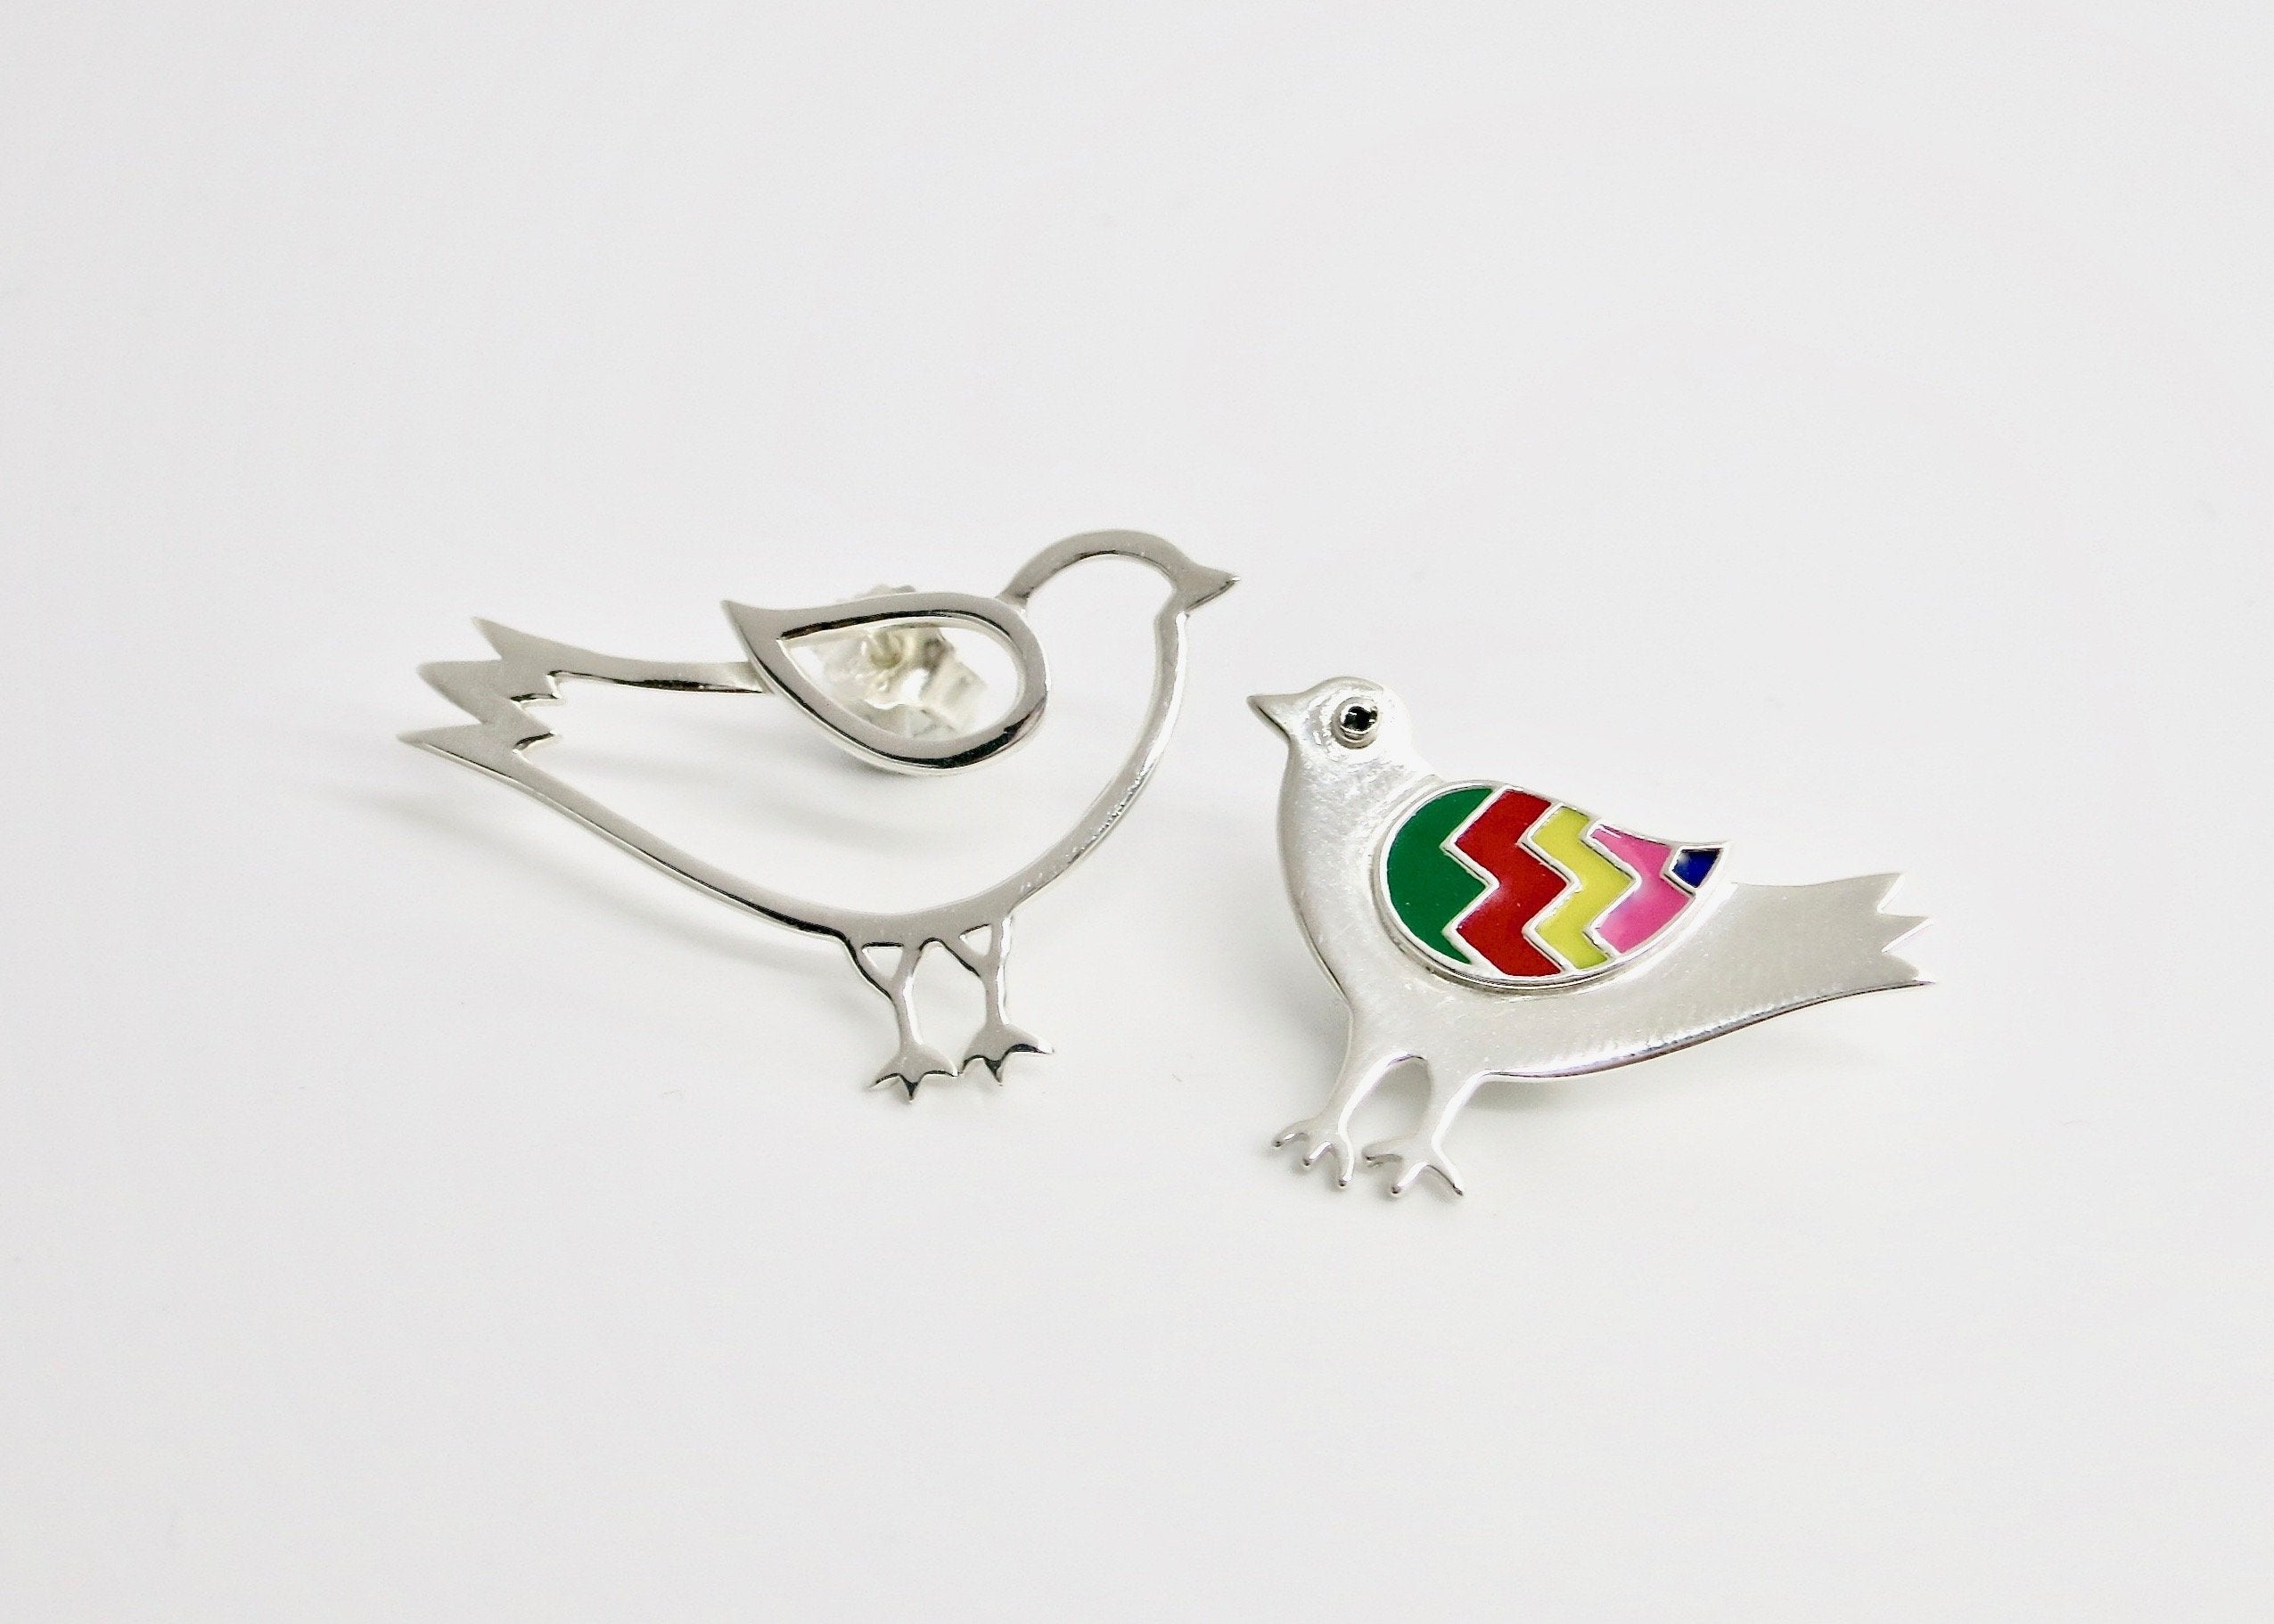 Whimsical, asymmetrical 'paksi' (bird) earrings - Craft Stories Handmade, contemporary, personal and home accessories. Designed in California. Handcrafted in India. Traditional craftsmanship meets modern aesthetics. Sustainable design ethos, fair trade, conscious, artisanal jewelry and home decor. Objects with a story. Unique and on-trend.